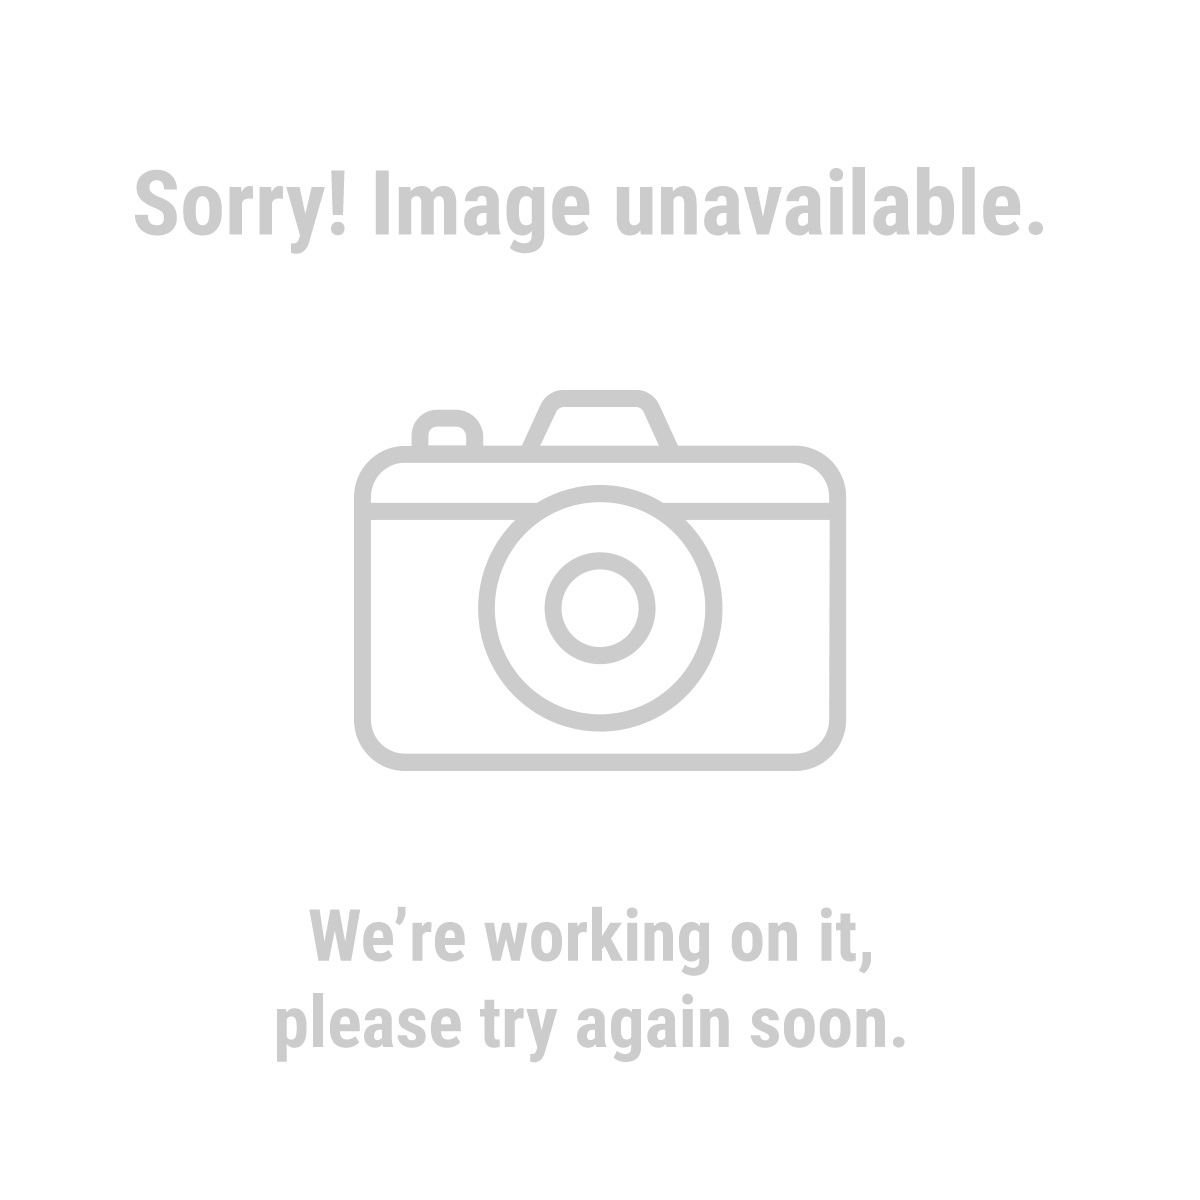 Haul-Master 60405 4 Piece 1 in. x 15 ft. Ratcheting Tie Downs